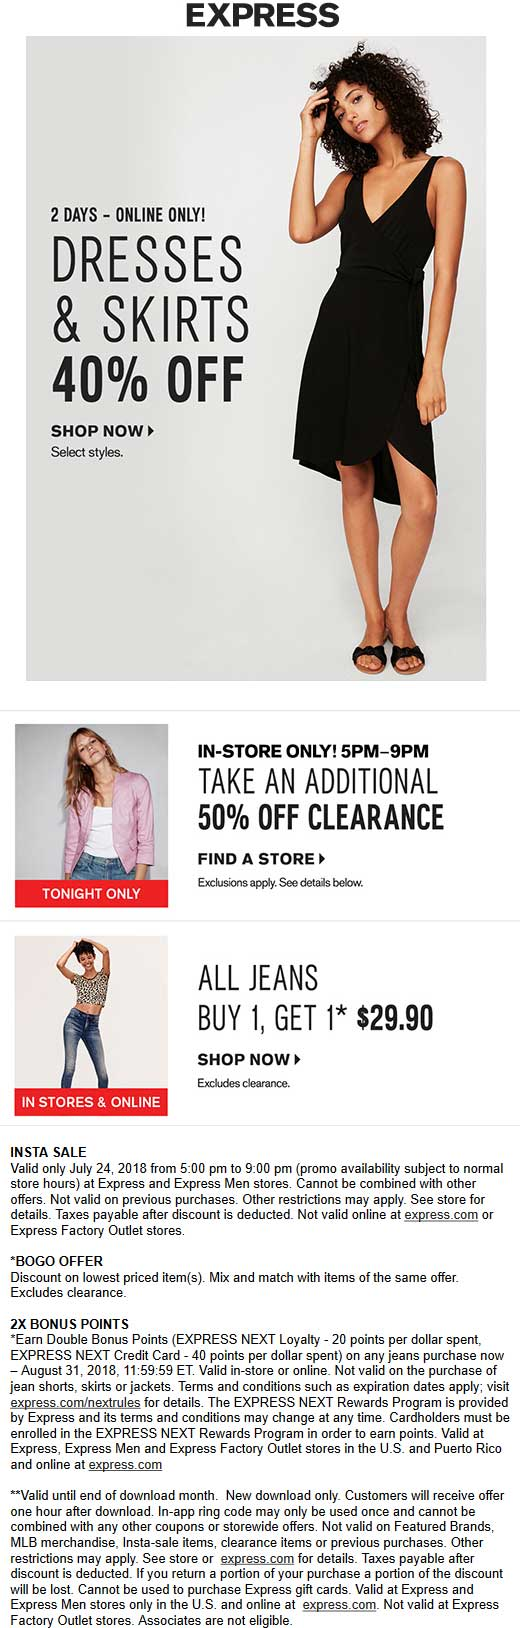 Express Coupon March 2019 Extra 50% off clearance 5-9p today at Express